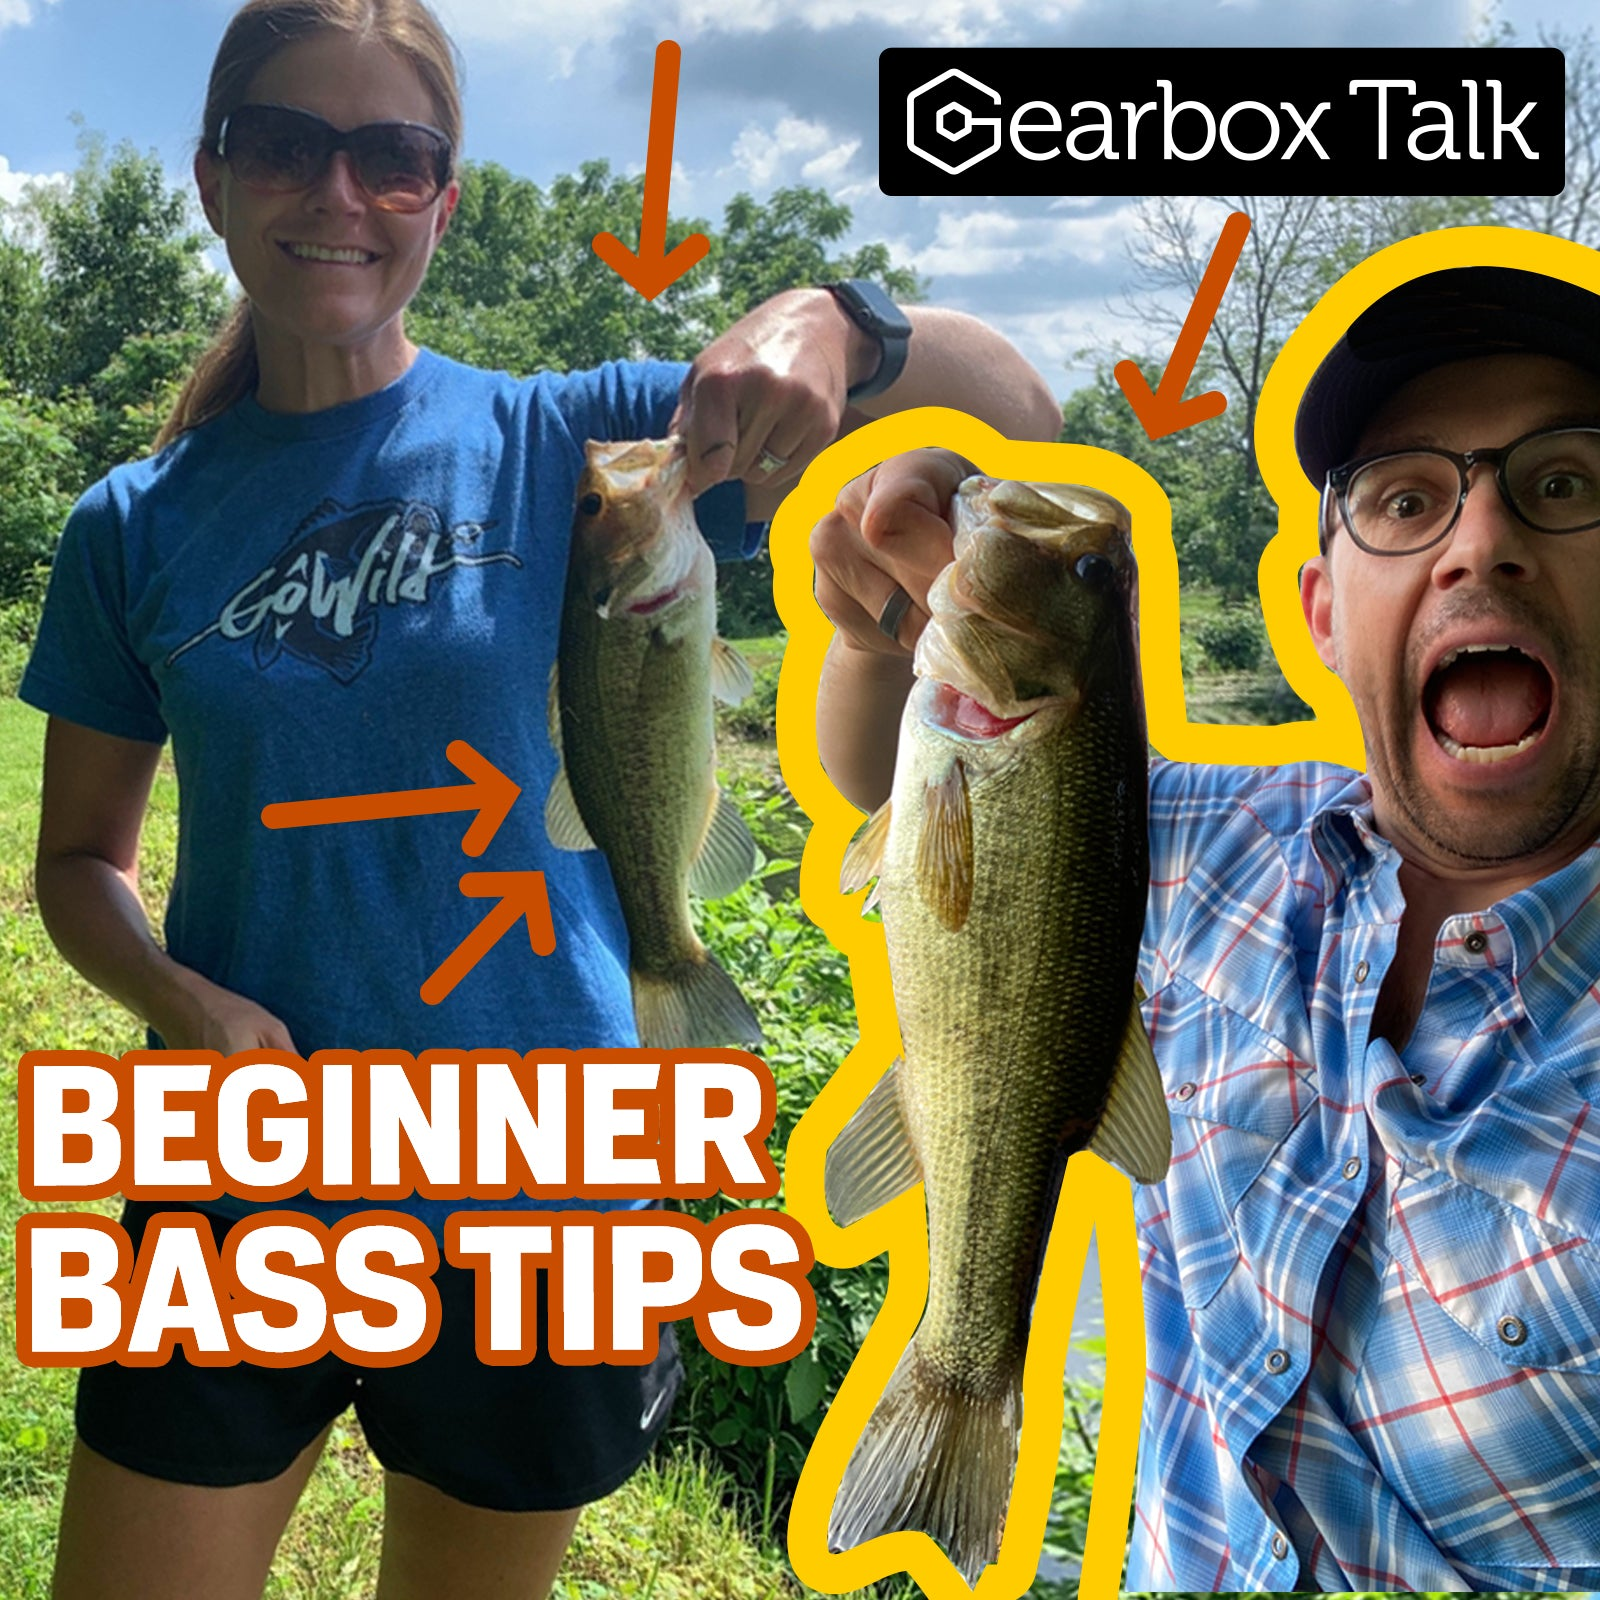 Jacob Knight & Arica Johnson: Bass Fishing Gear Tips From a Beginner and a Veteran